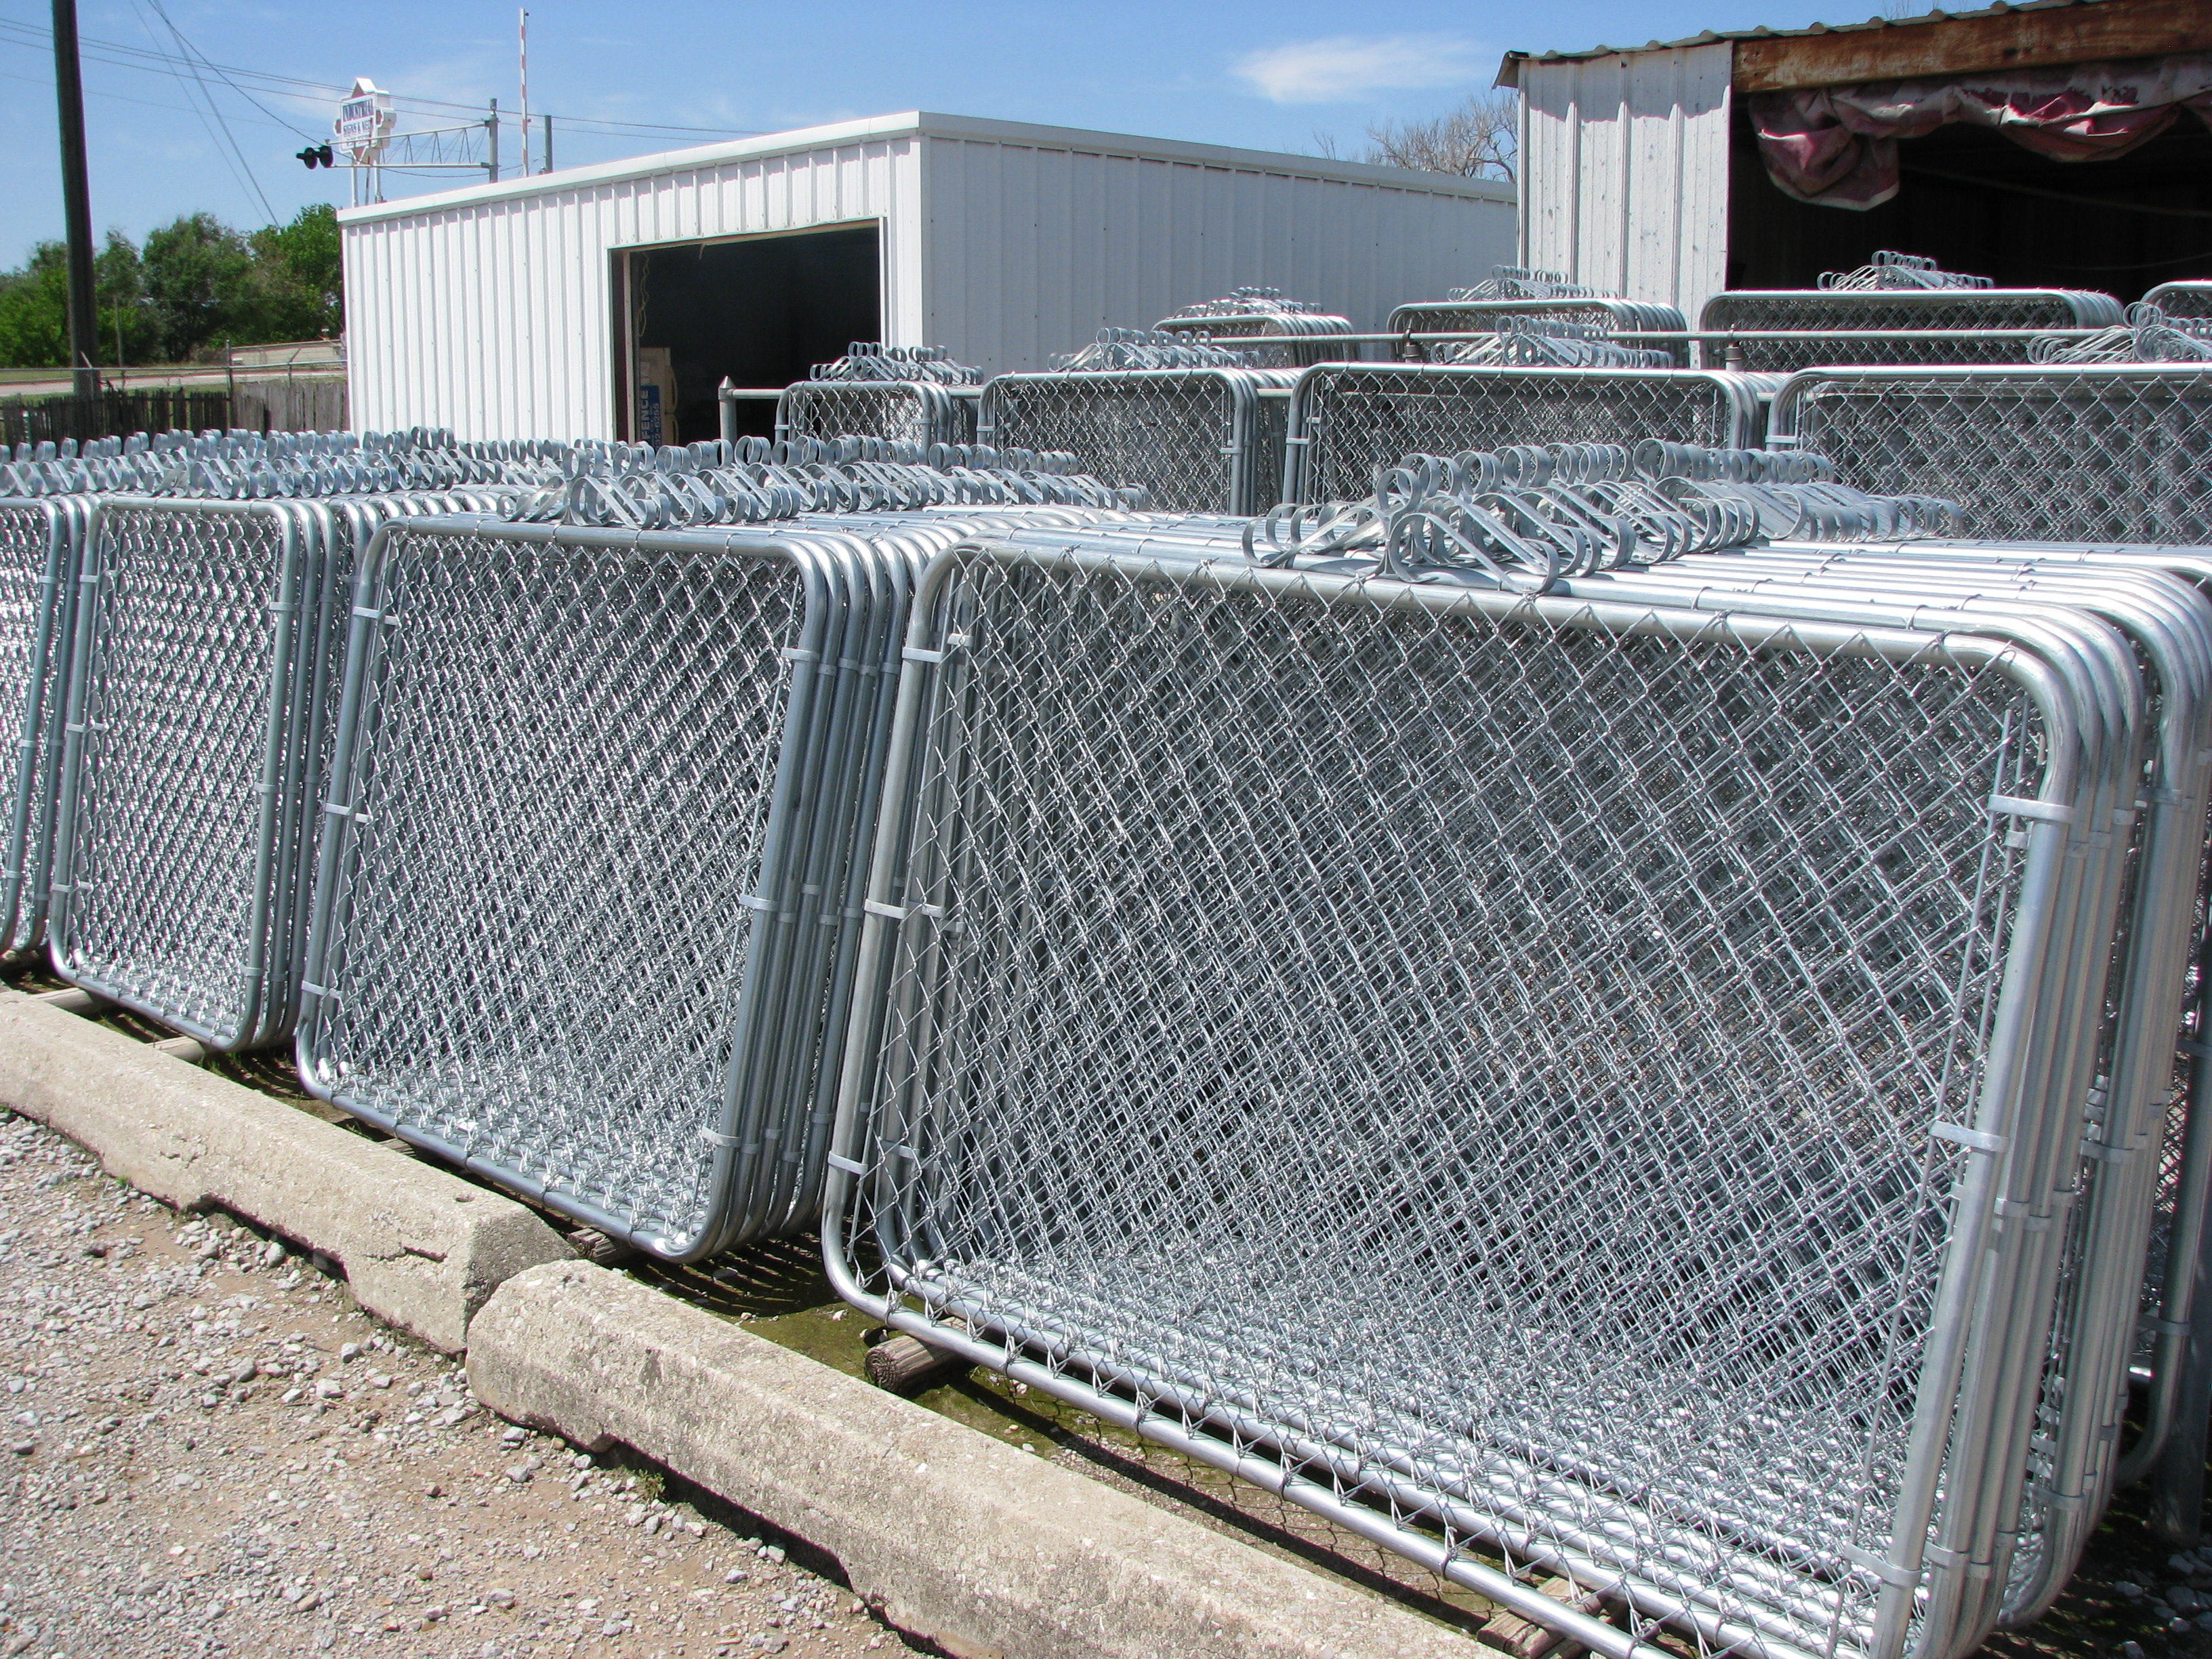 Fence Supplier Acme Fence In OKC Has Chain-Link Gates.